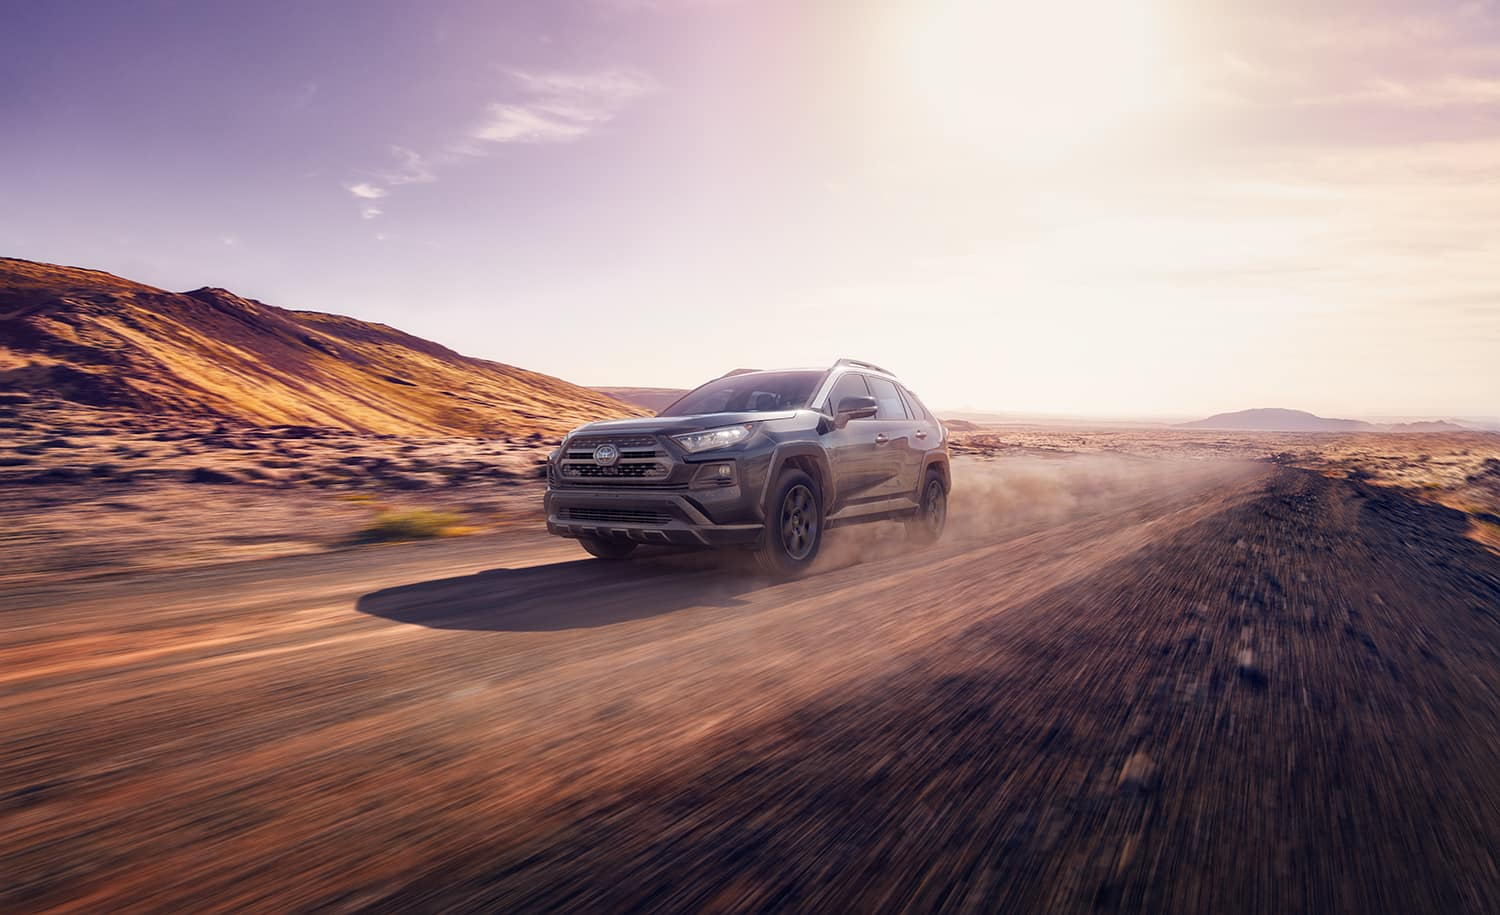 Accessories that help keep your Toyota protected at Halterman's Toyota in East Stroudsburg   2020 Toyota RAV4 driving on off-road terrain